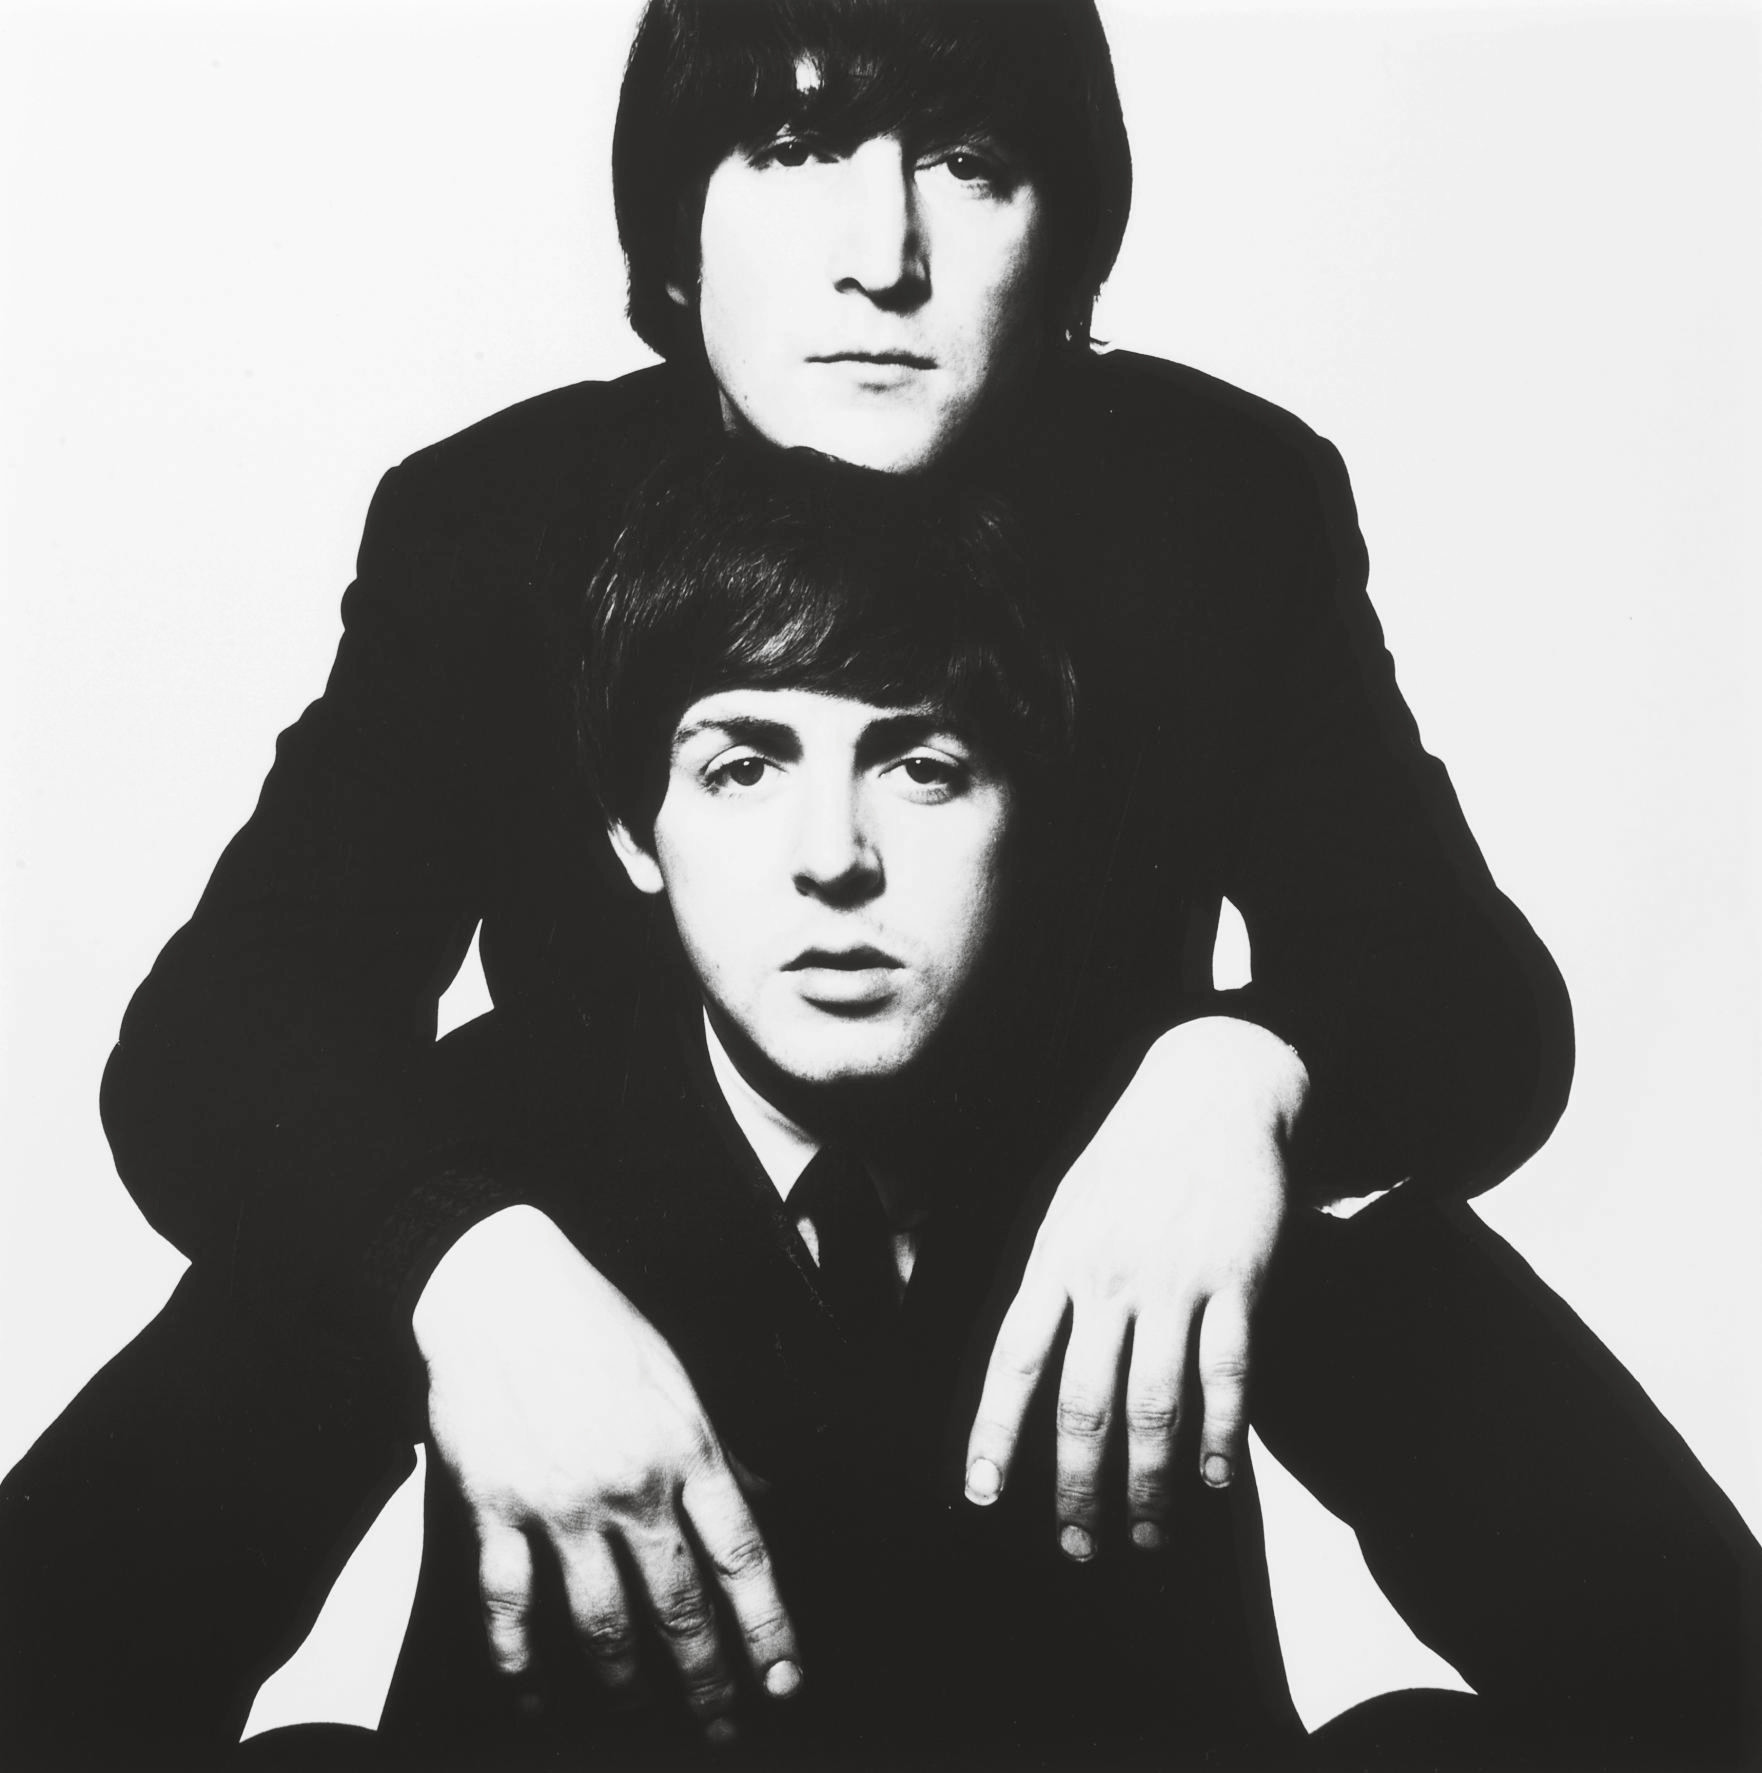 John Lennon and Paul McCartney, January 1965